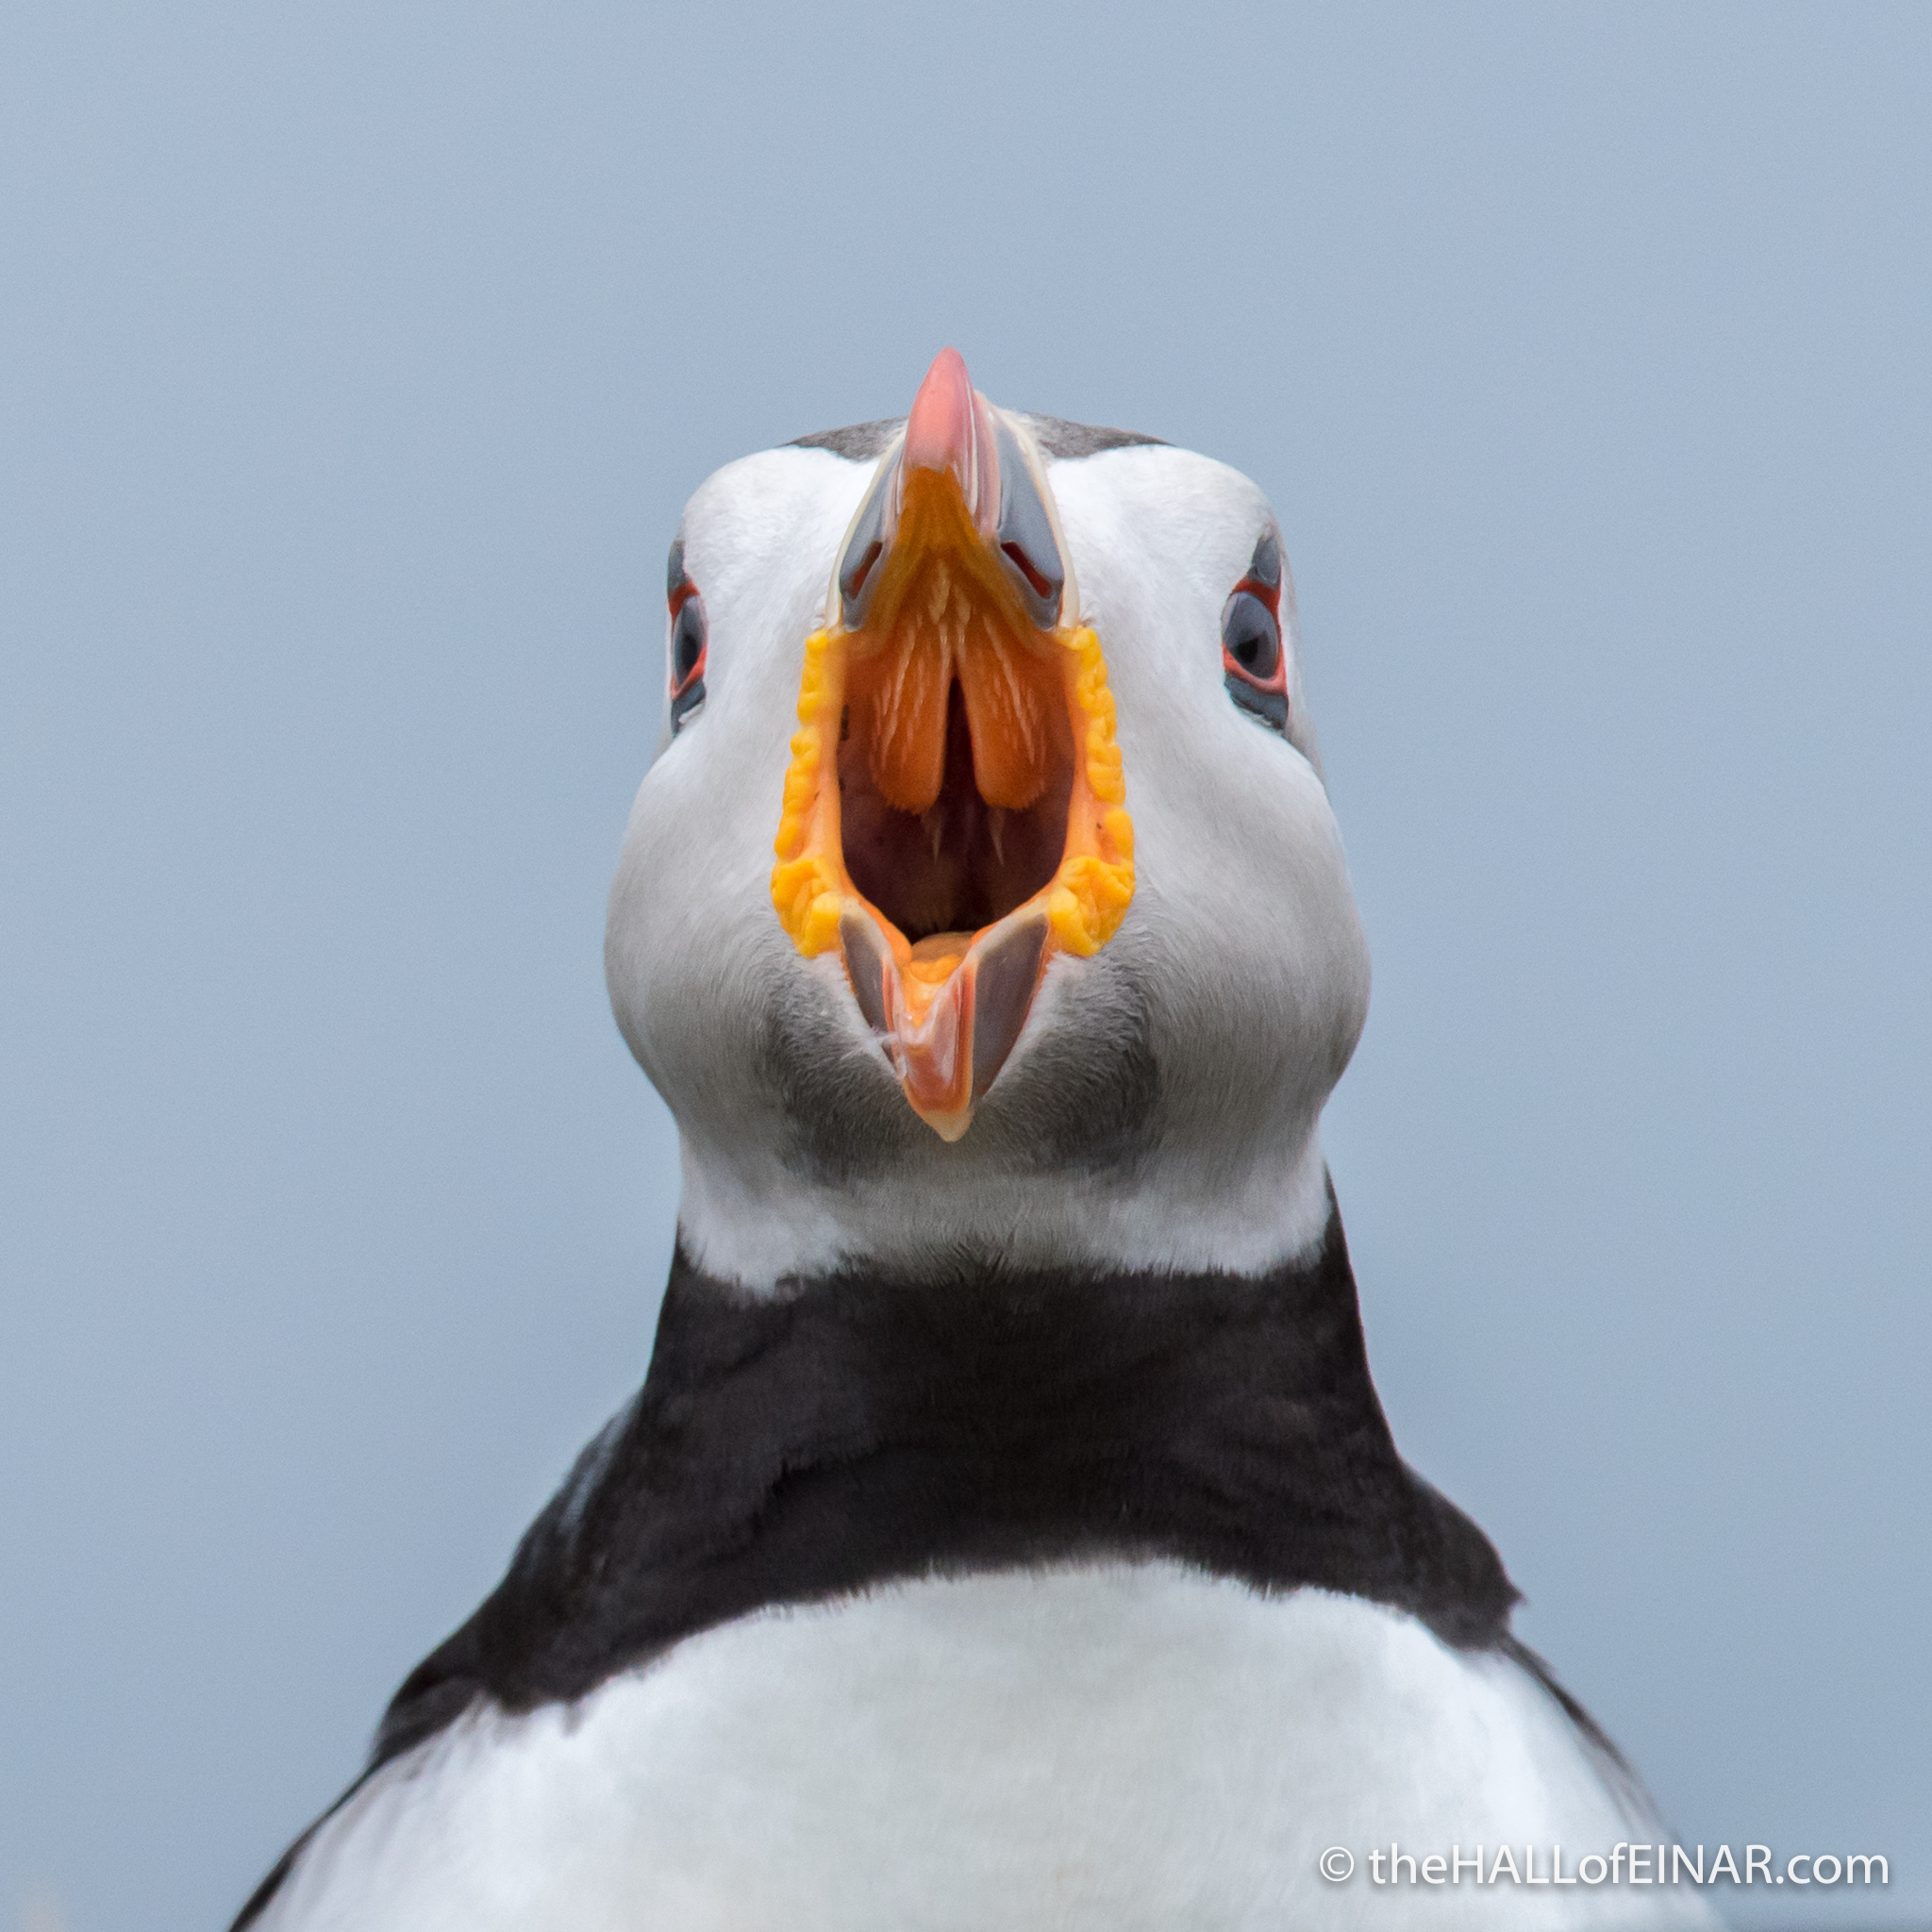 The Puffin Roars - The Hall of Einar - photograph (c) David Bailey (not the)